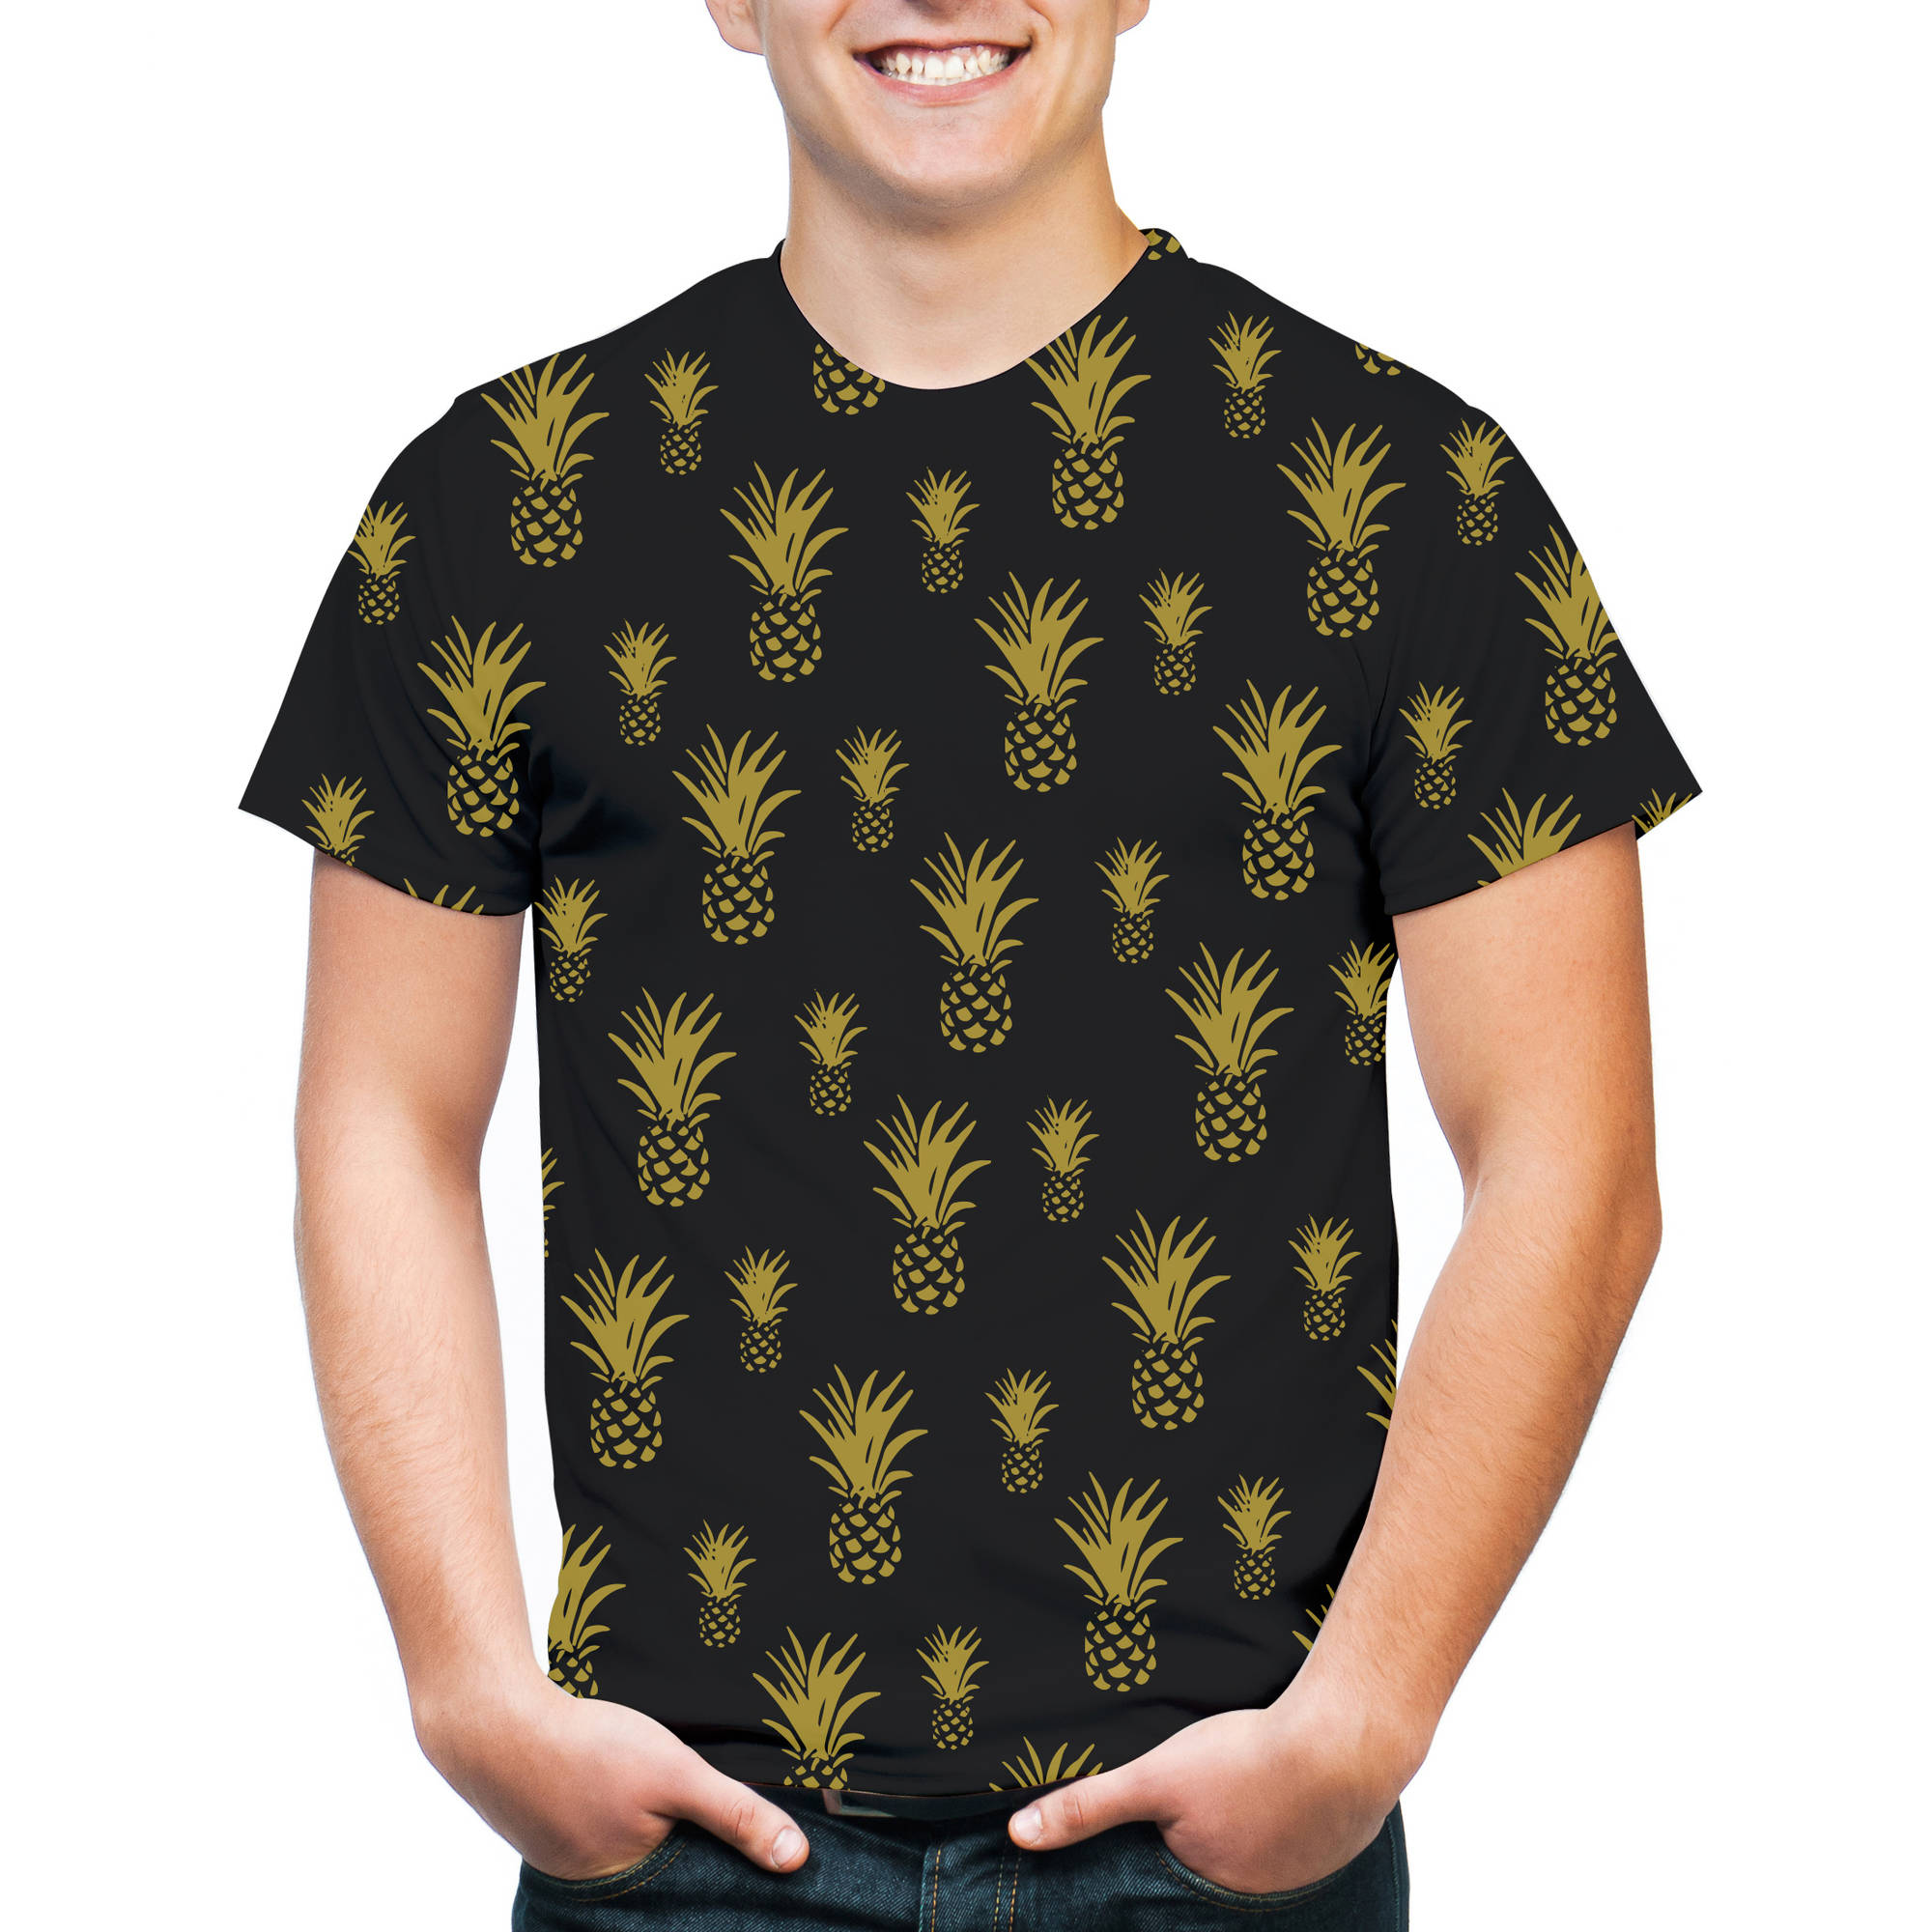 Pineapple Allover Print Big Men's Graphic Tee, 2XL